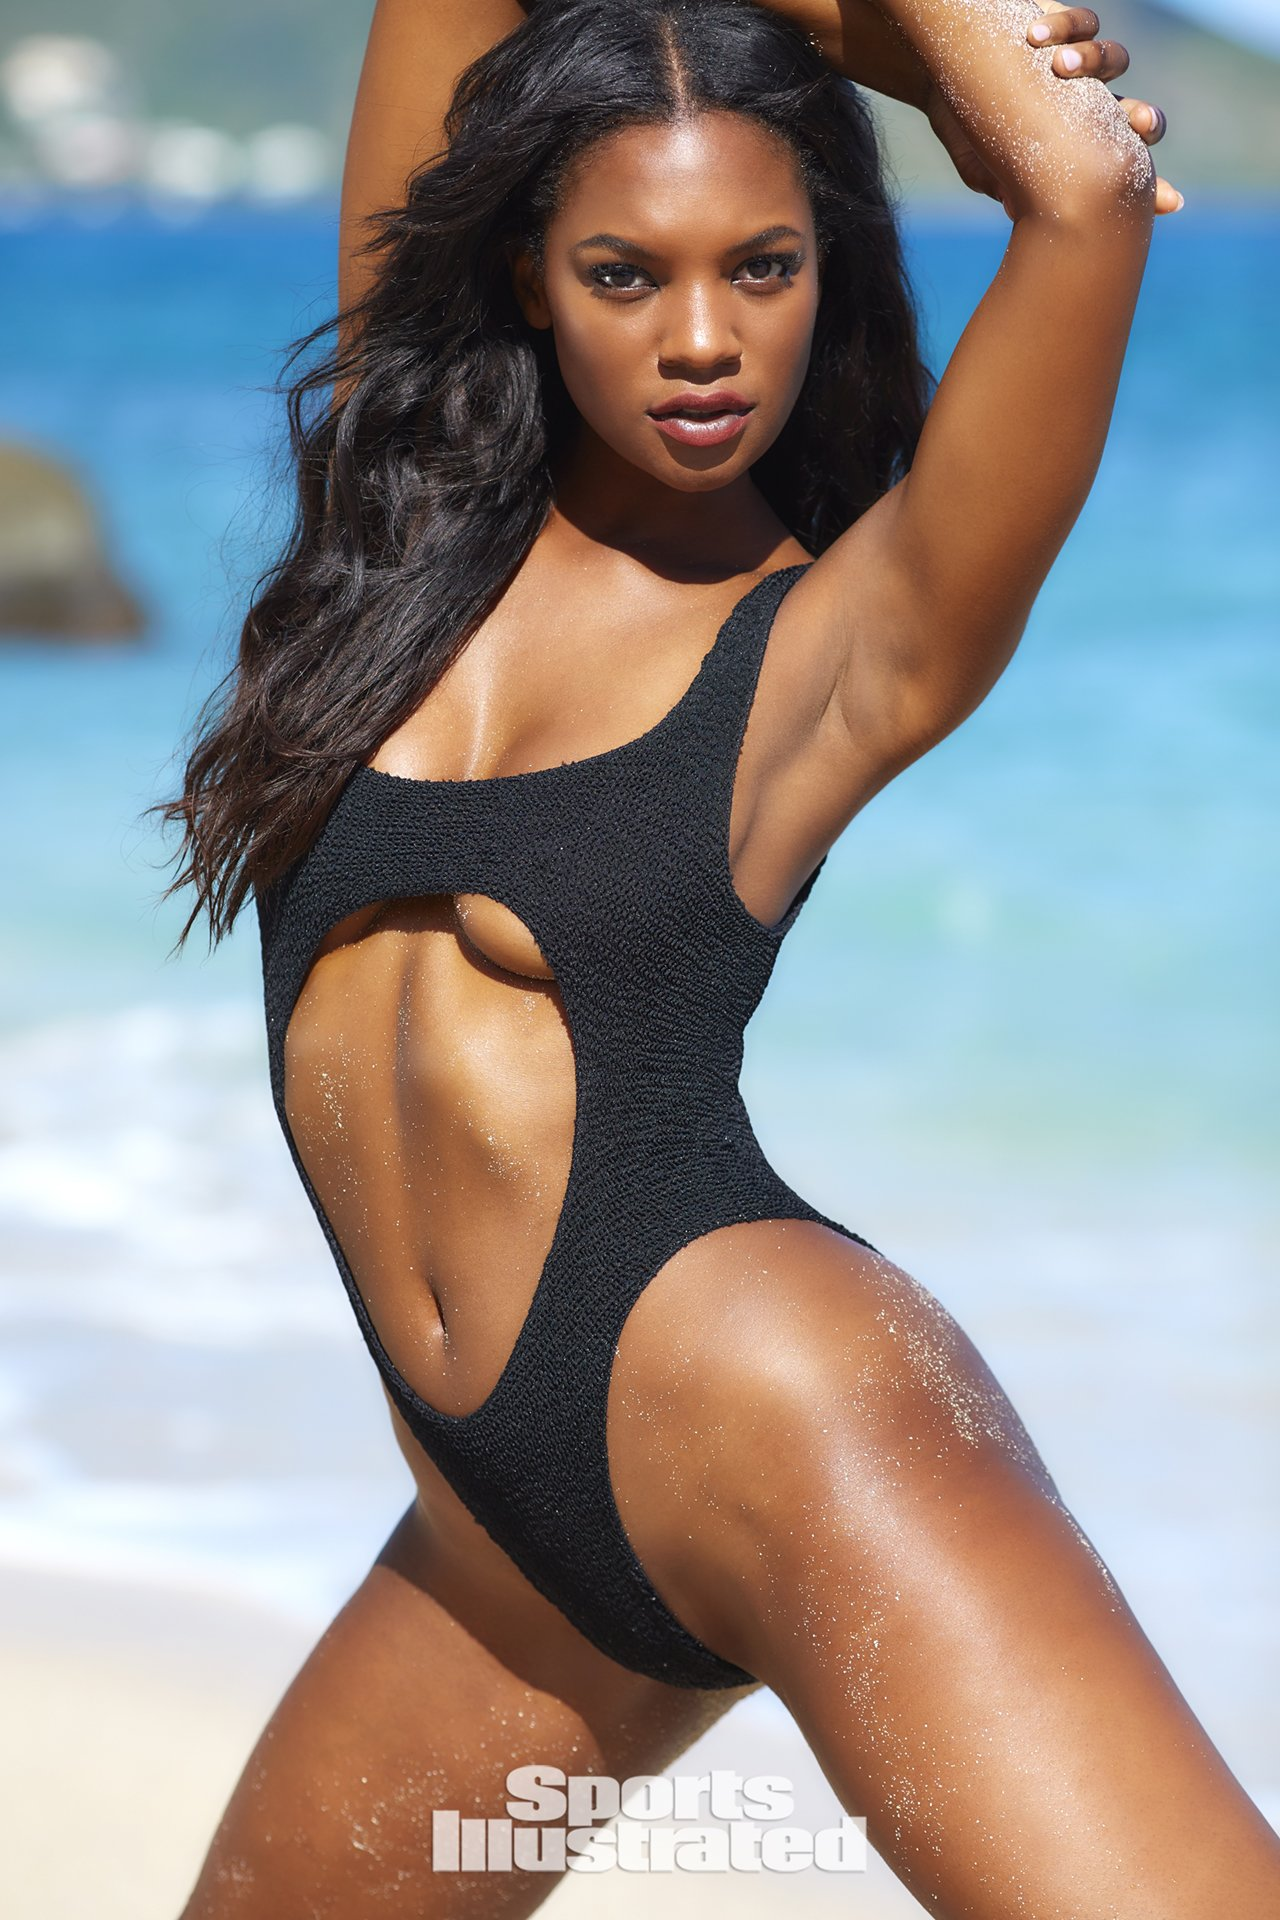 Sports Illustrated Swimsuit Issue 2018 (34).jpg